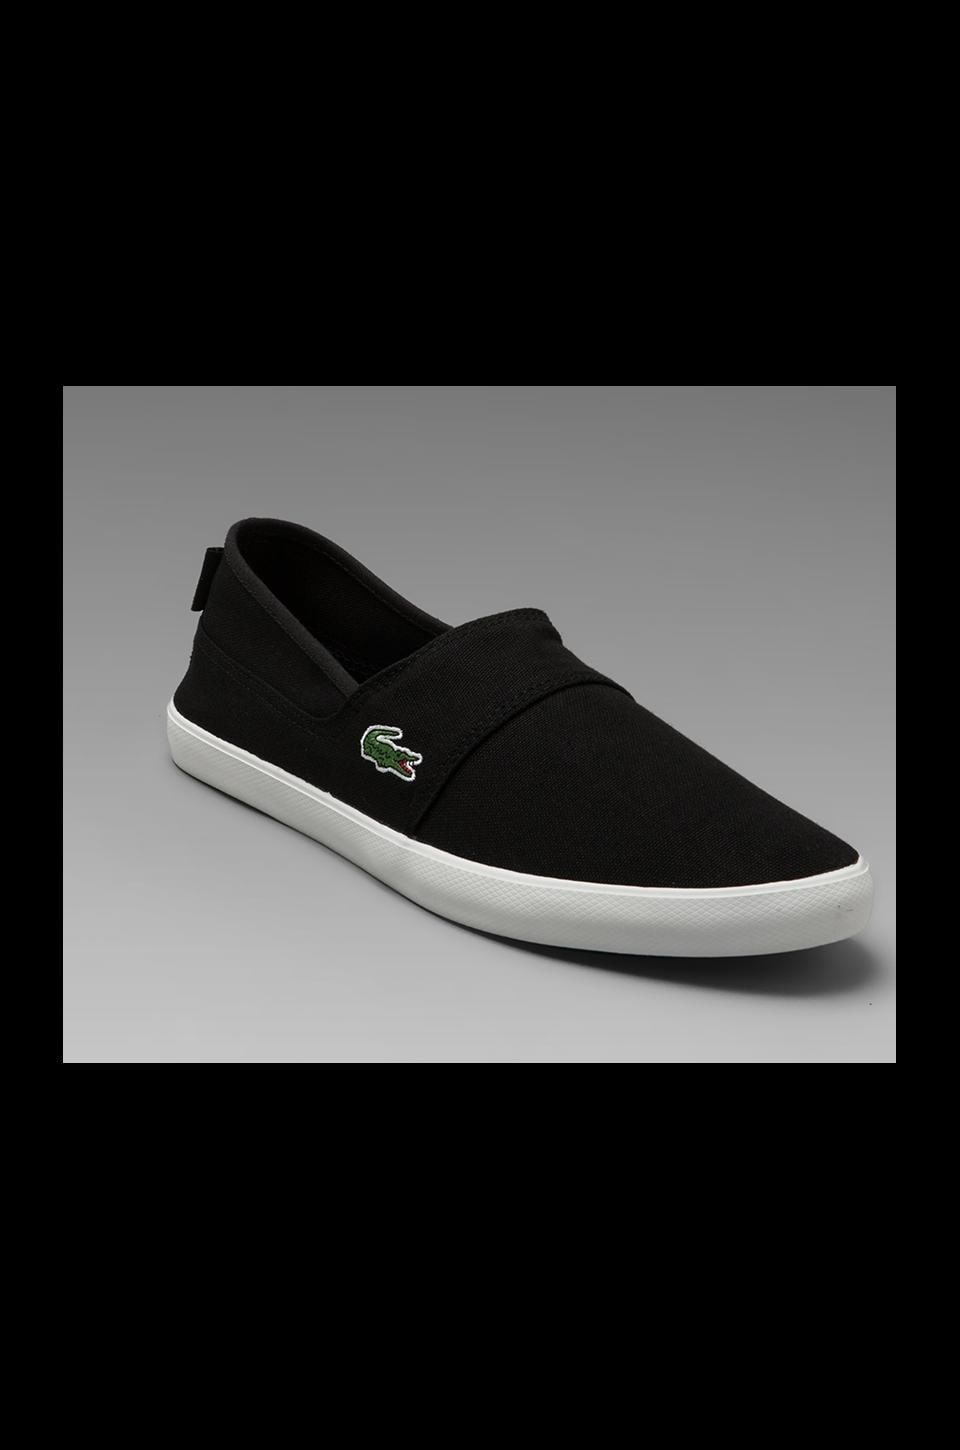 Lacoste Clemente Shoe in Black